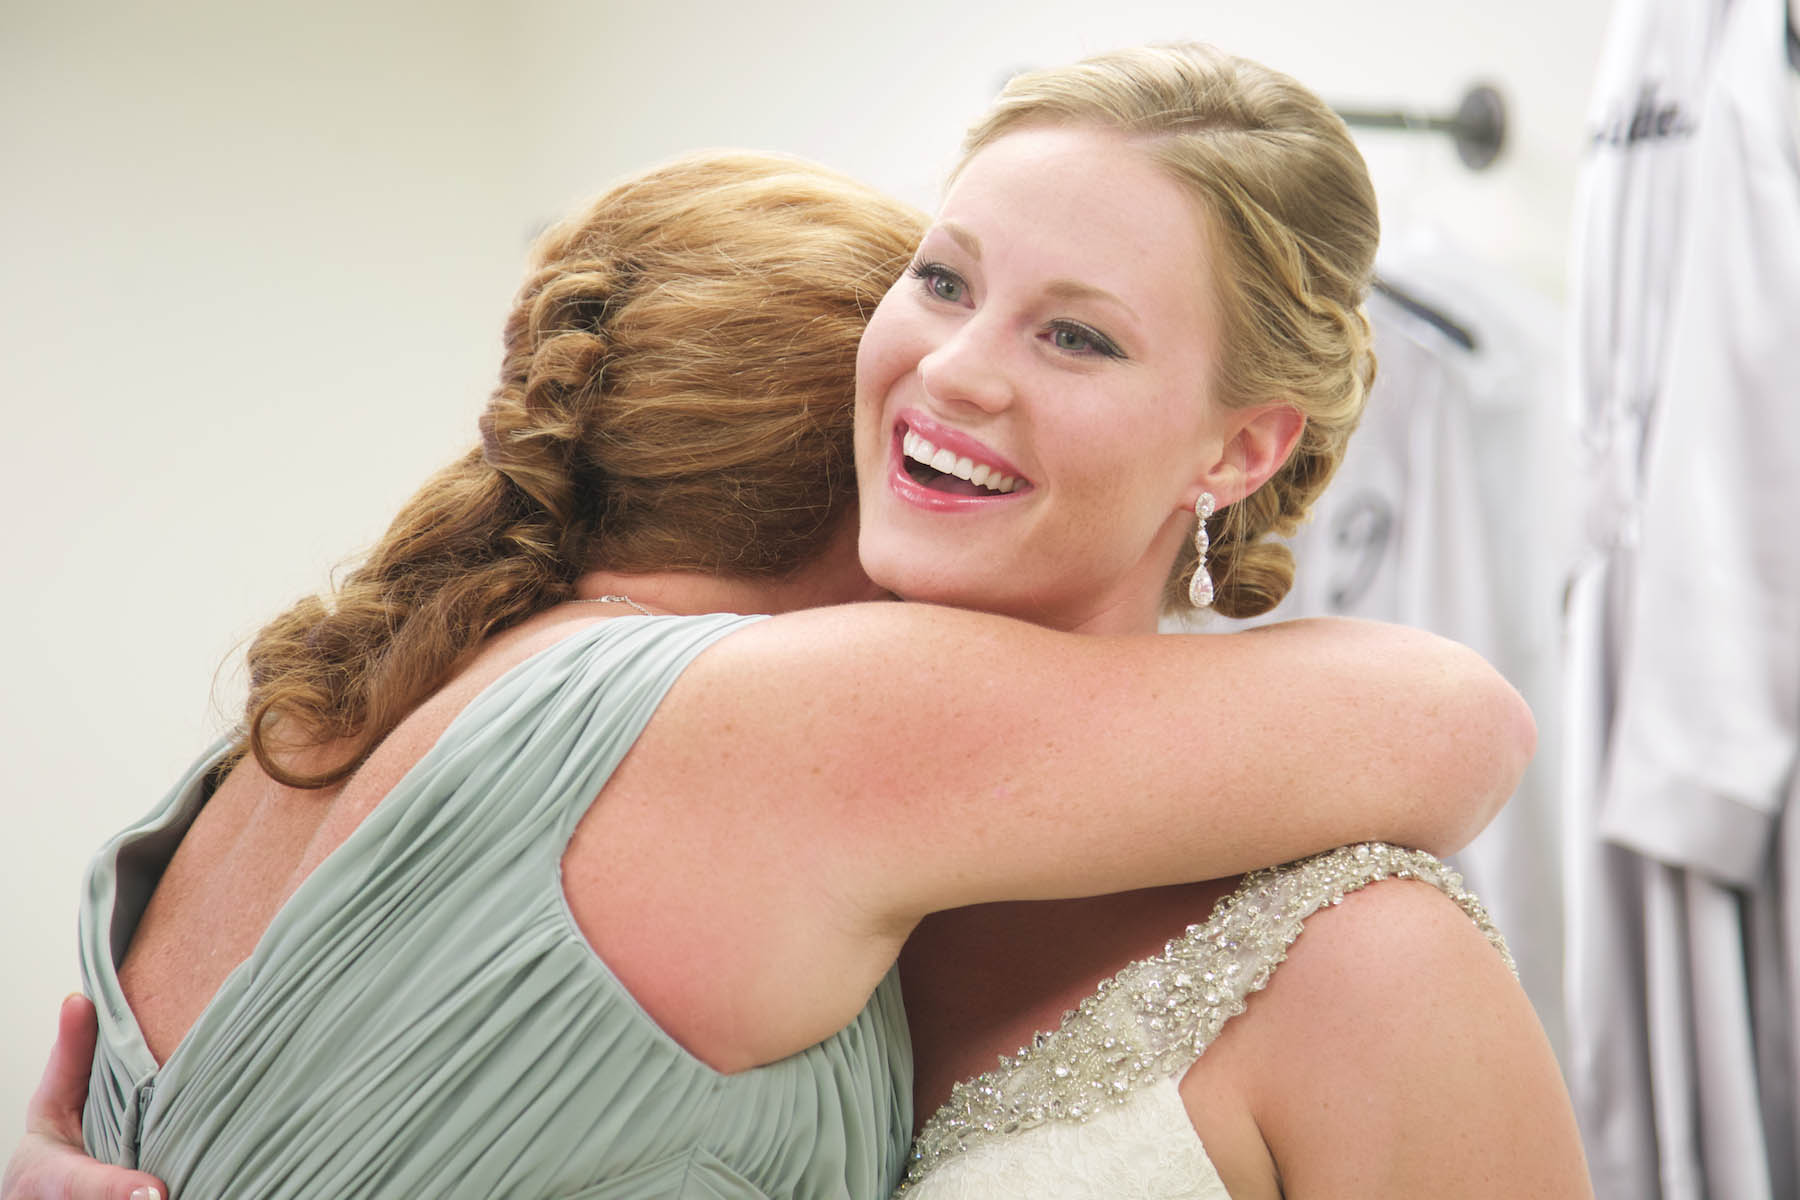 Jaclyn hugs her mother before the ceremony at Allerton Park, Monticello. Wedding photography by Tiffany & Steve of Warmowski Photography.